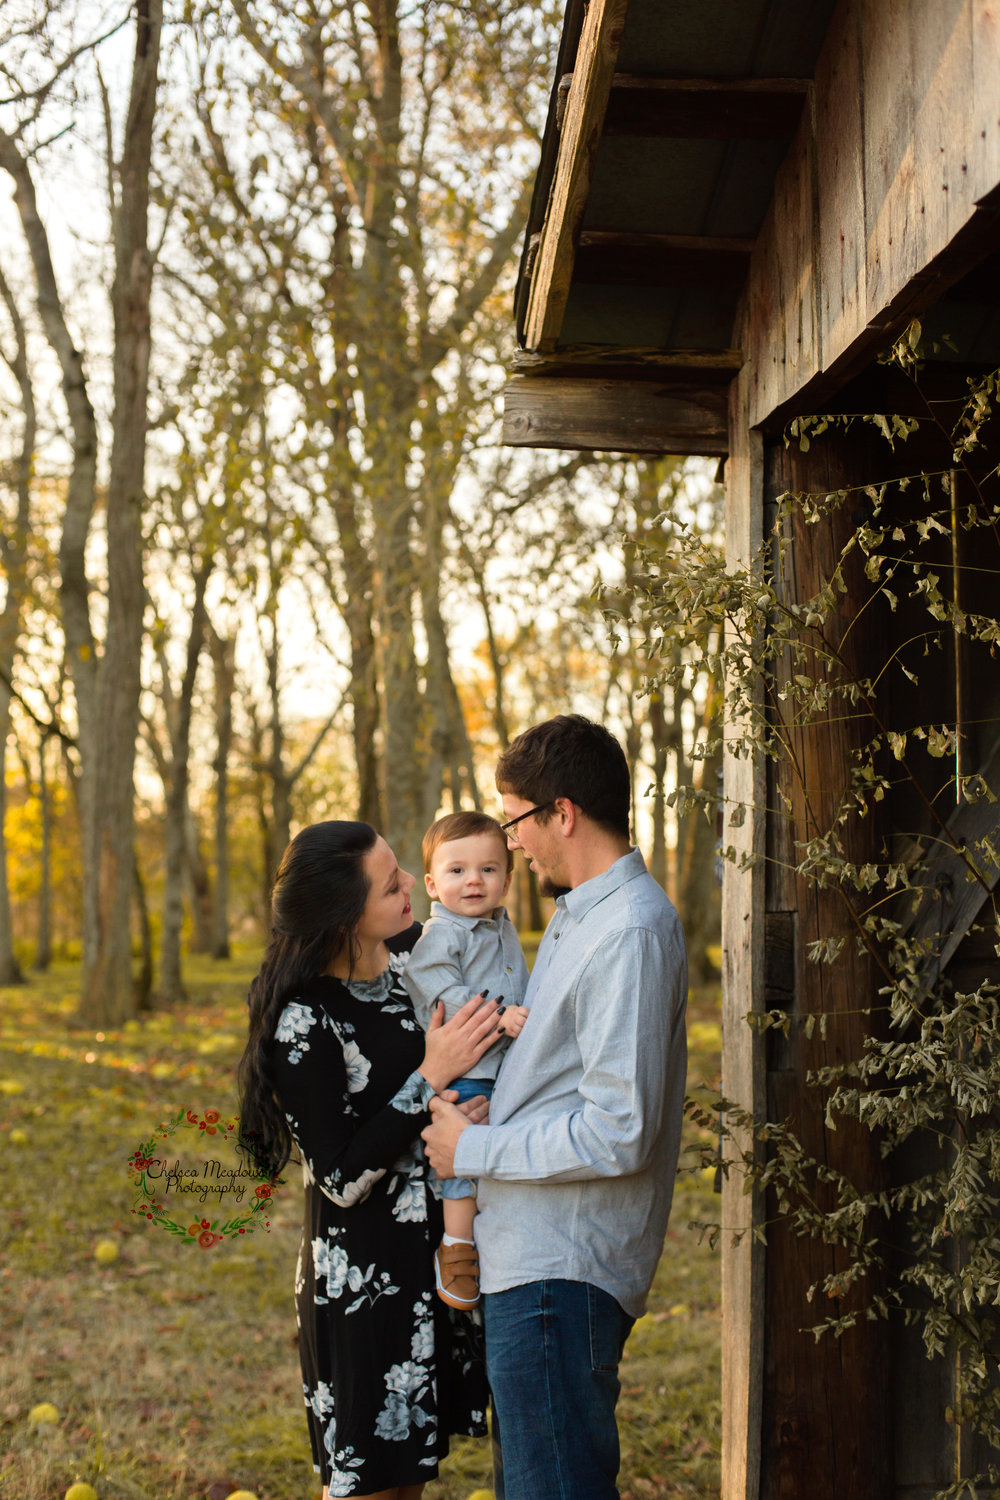 Jessica & Derek Engagement - Nashville Wedding Photographer - Chelsea Meadows Photography (25).jpg